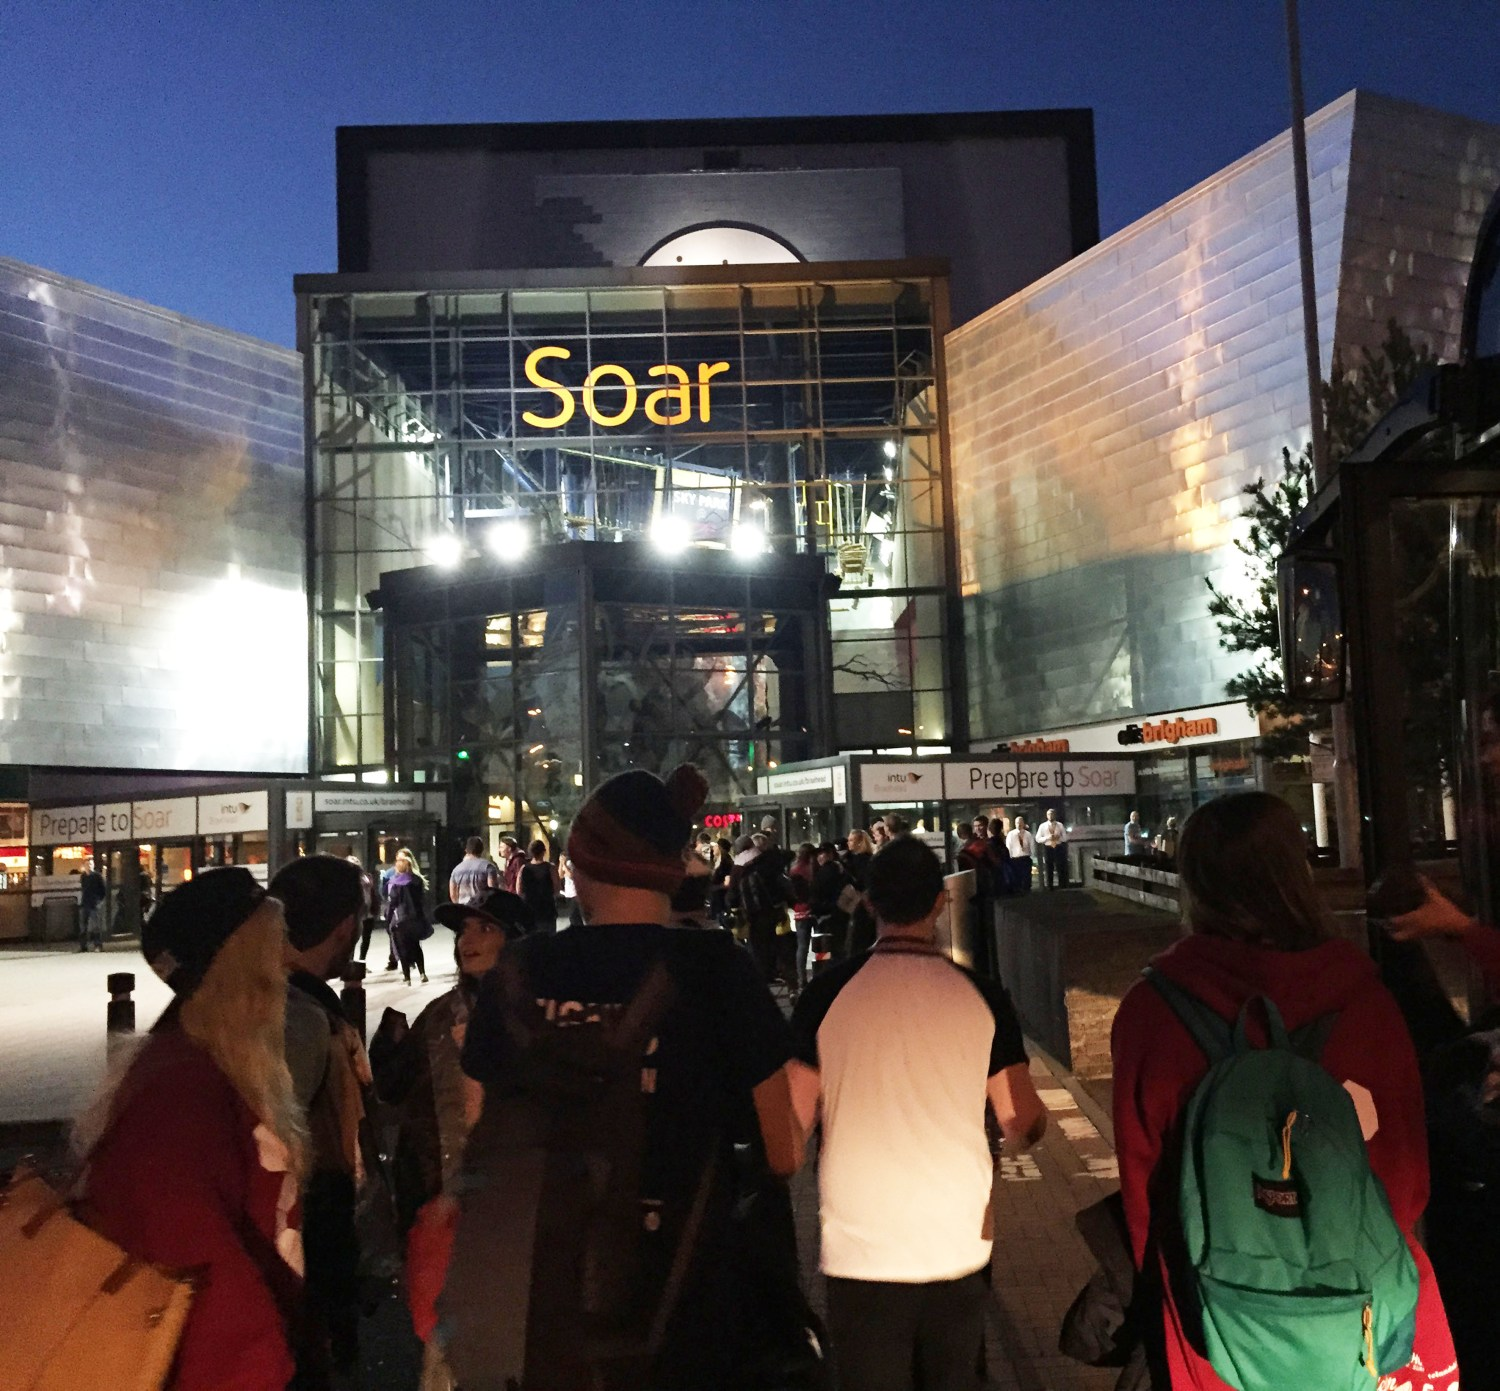 Soar at intu Braehead external